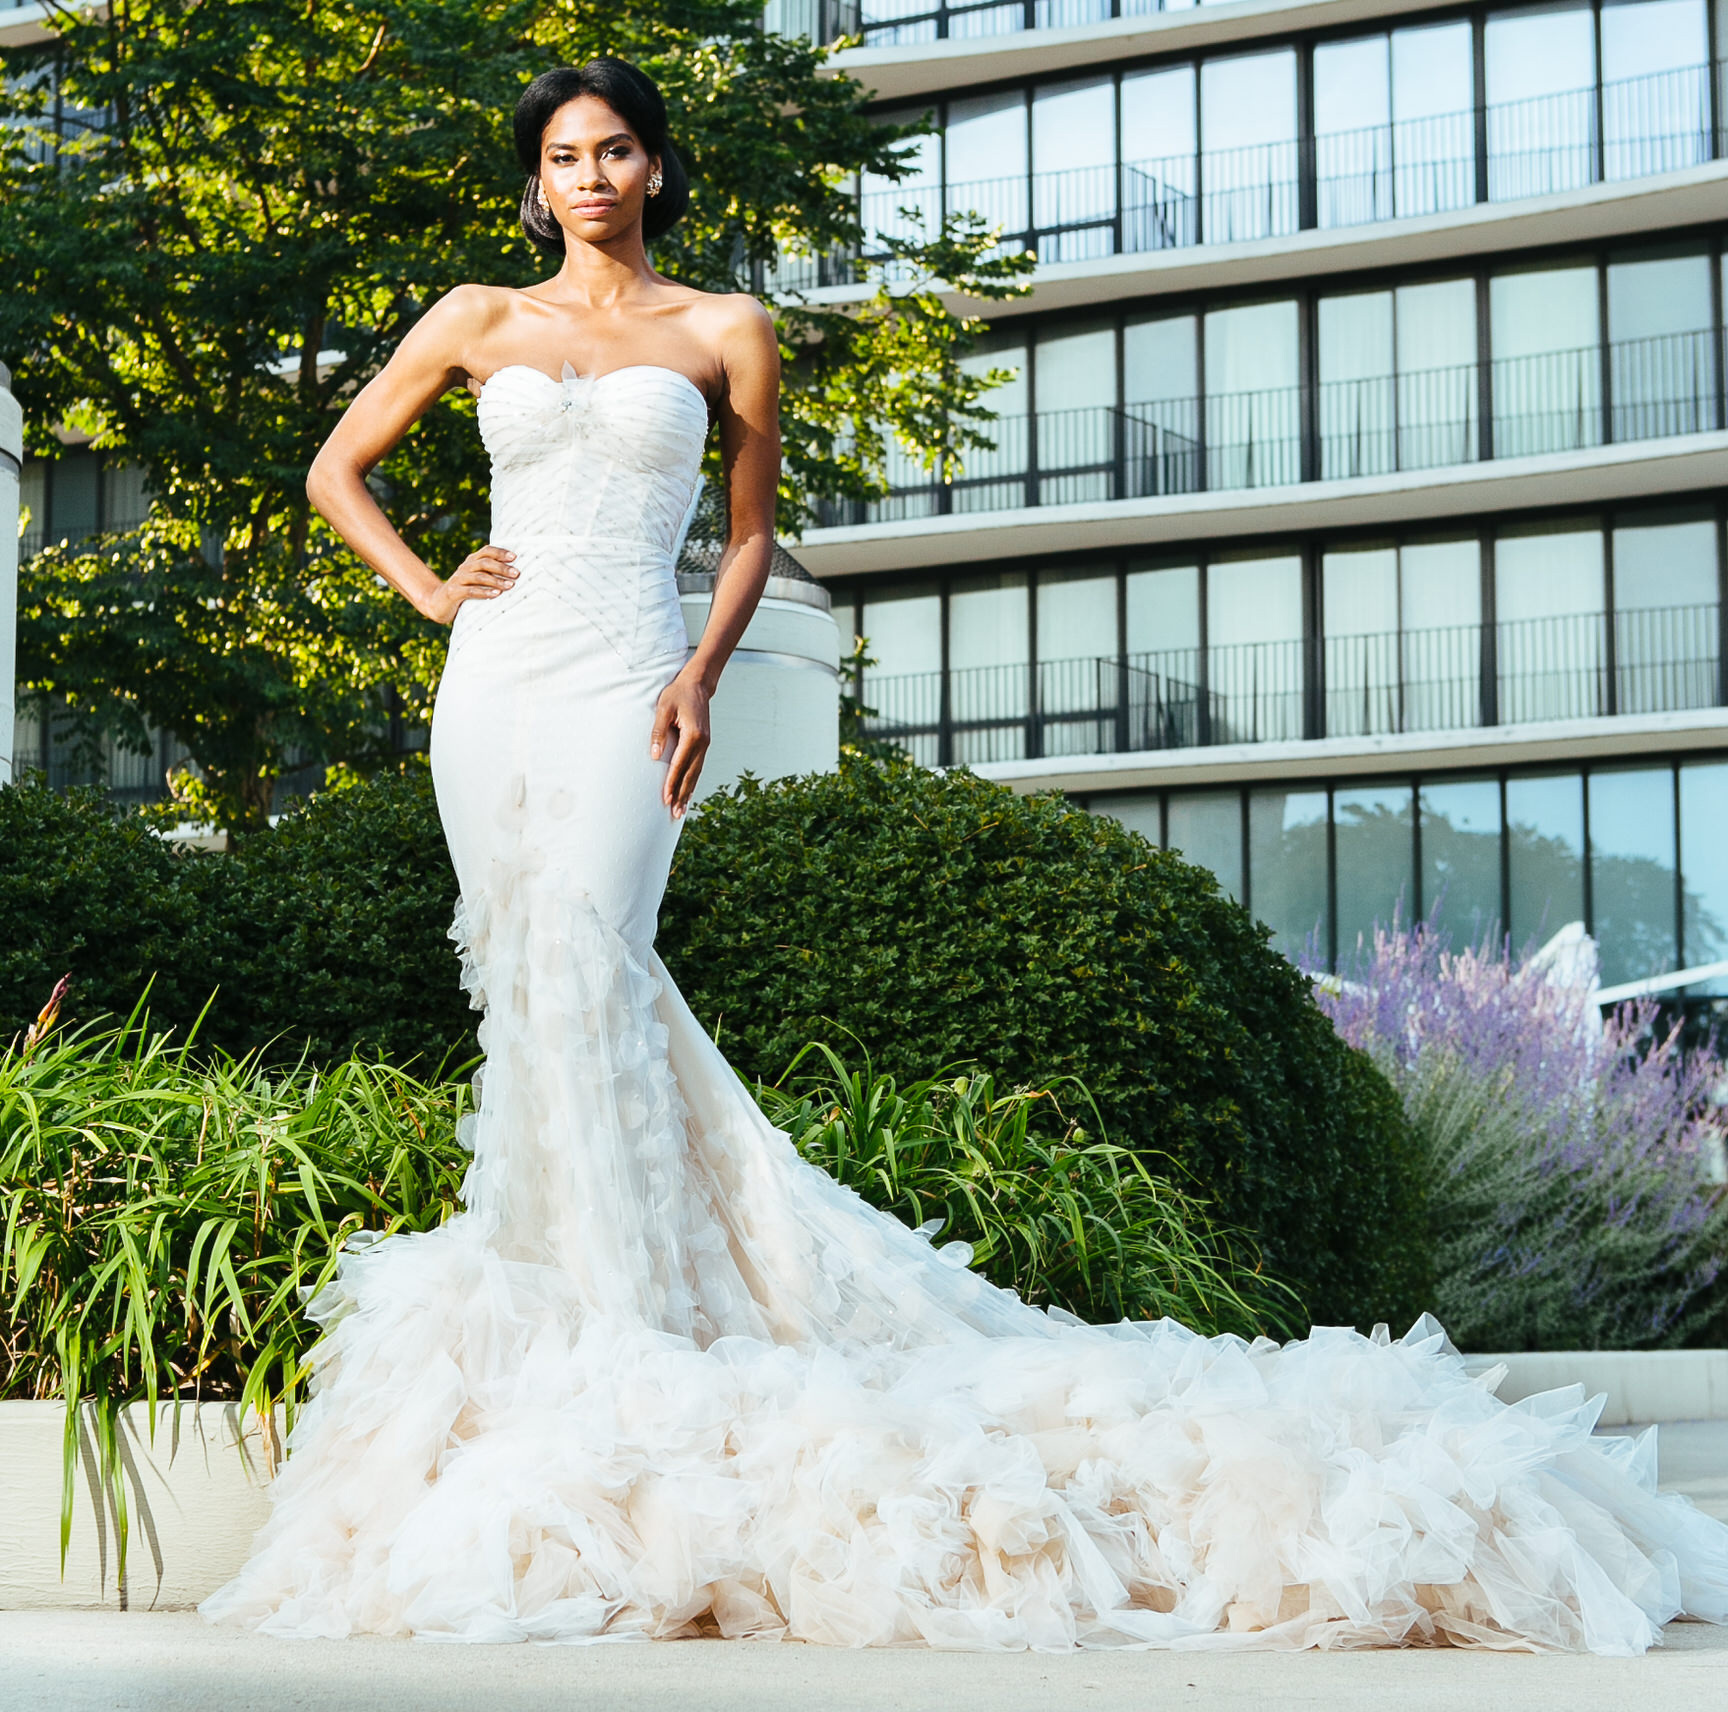 tips for bridal alterations, rules for bridal alterations, how to get your wedding dress altered